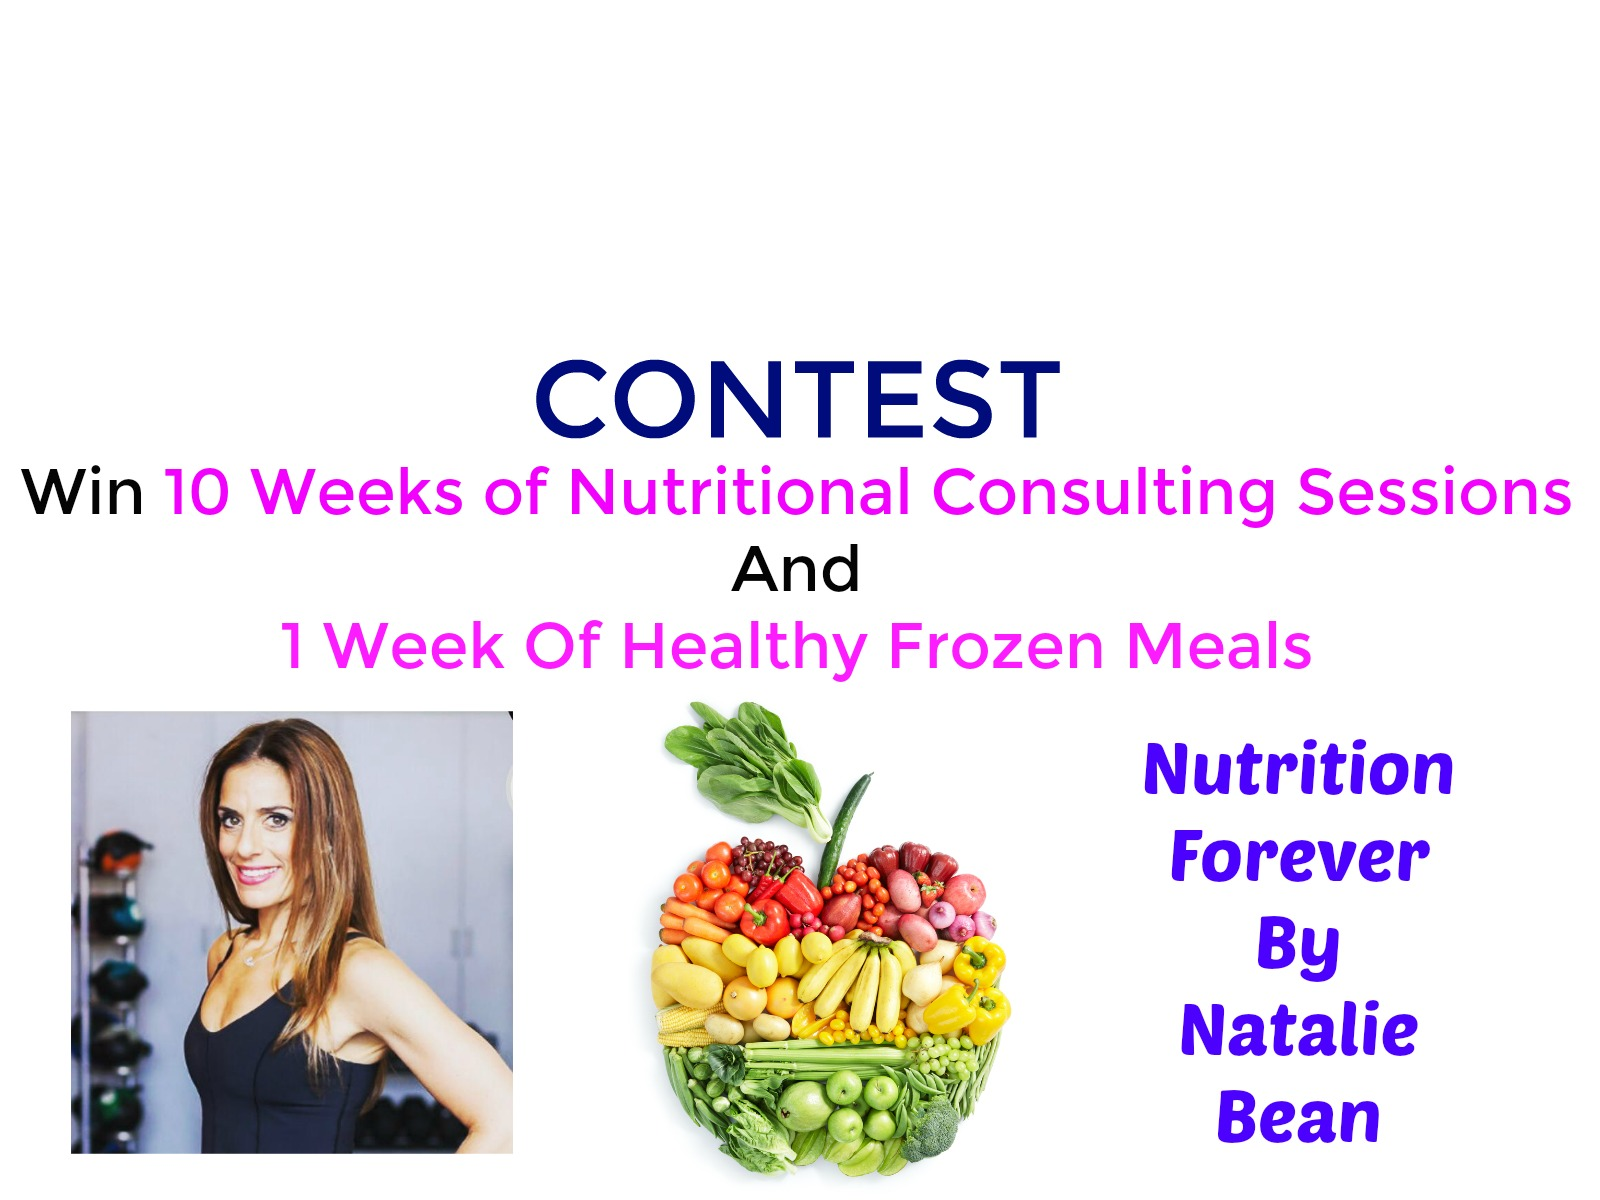 CONTEST: Win 10 Weeks of Nutritional Consulting & Meals